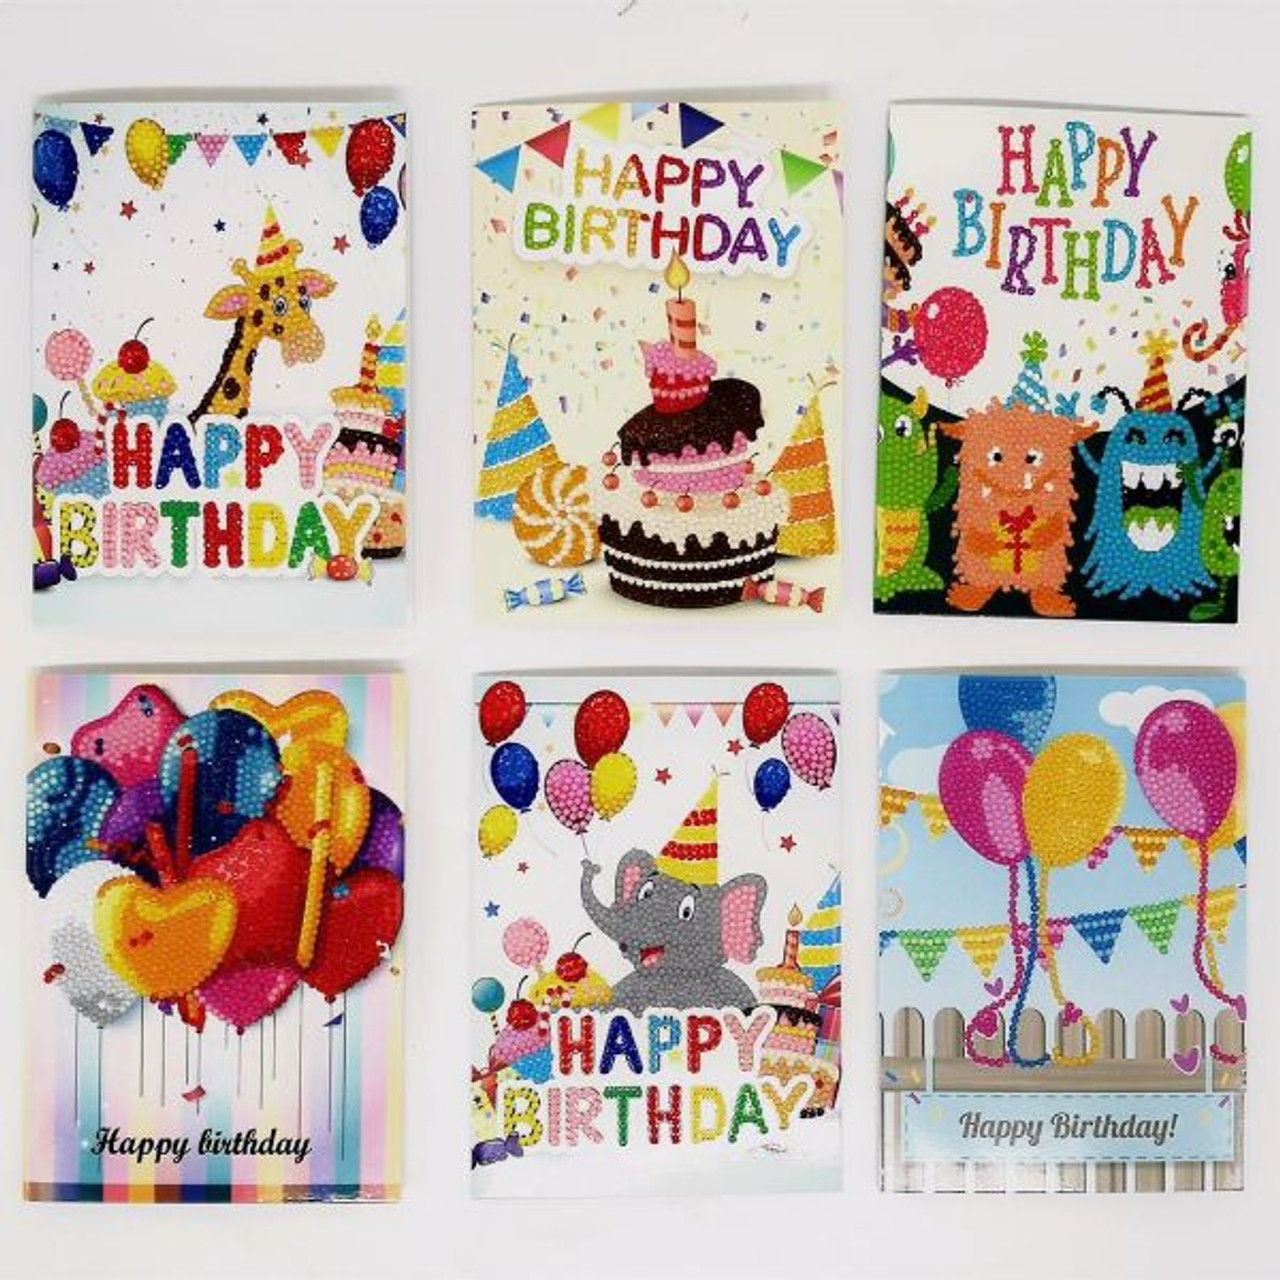 5D DIY Diamond Painting Birthday Card Kit - Set of 6